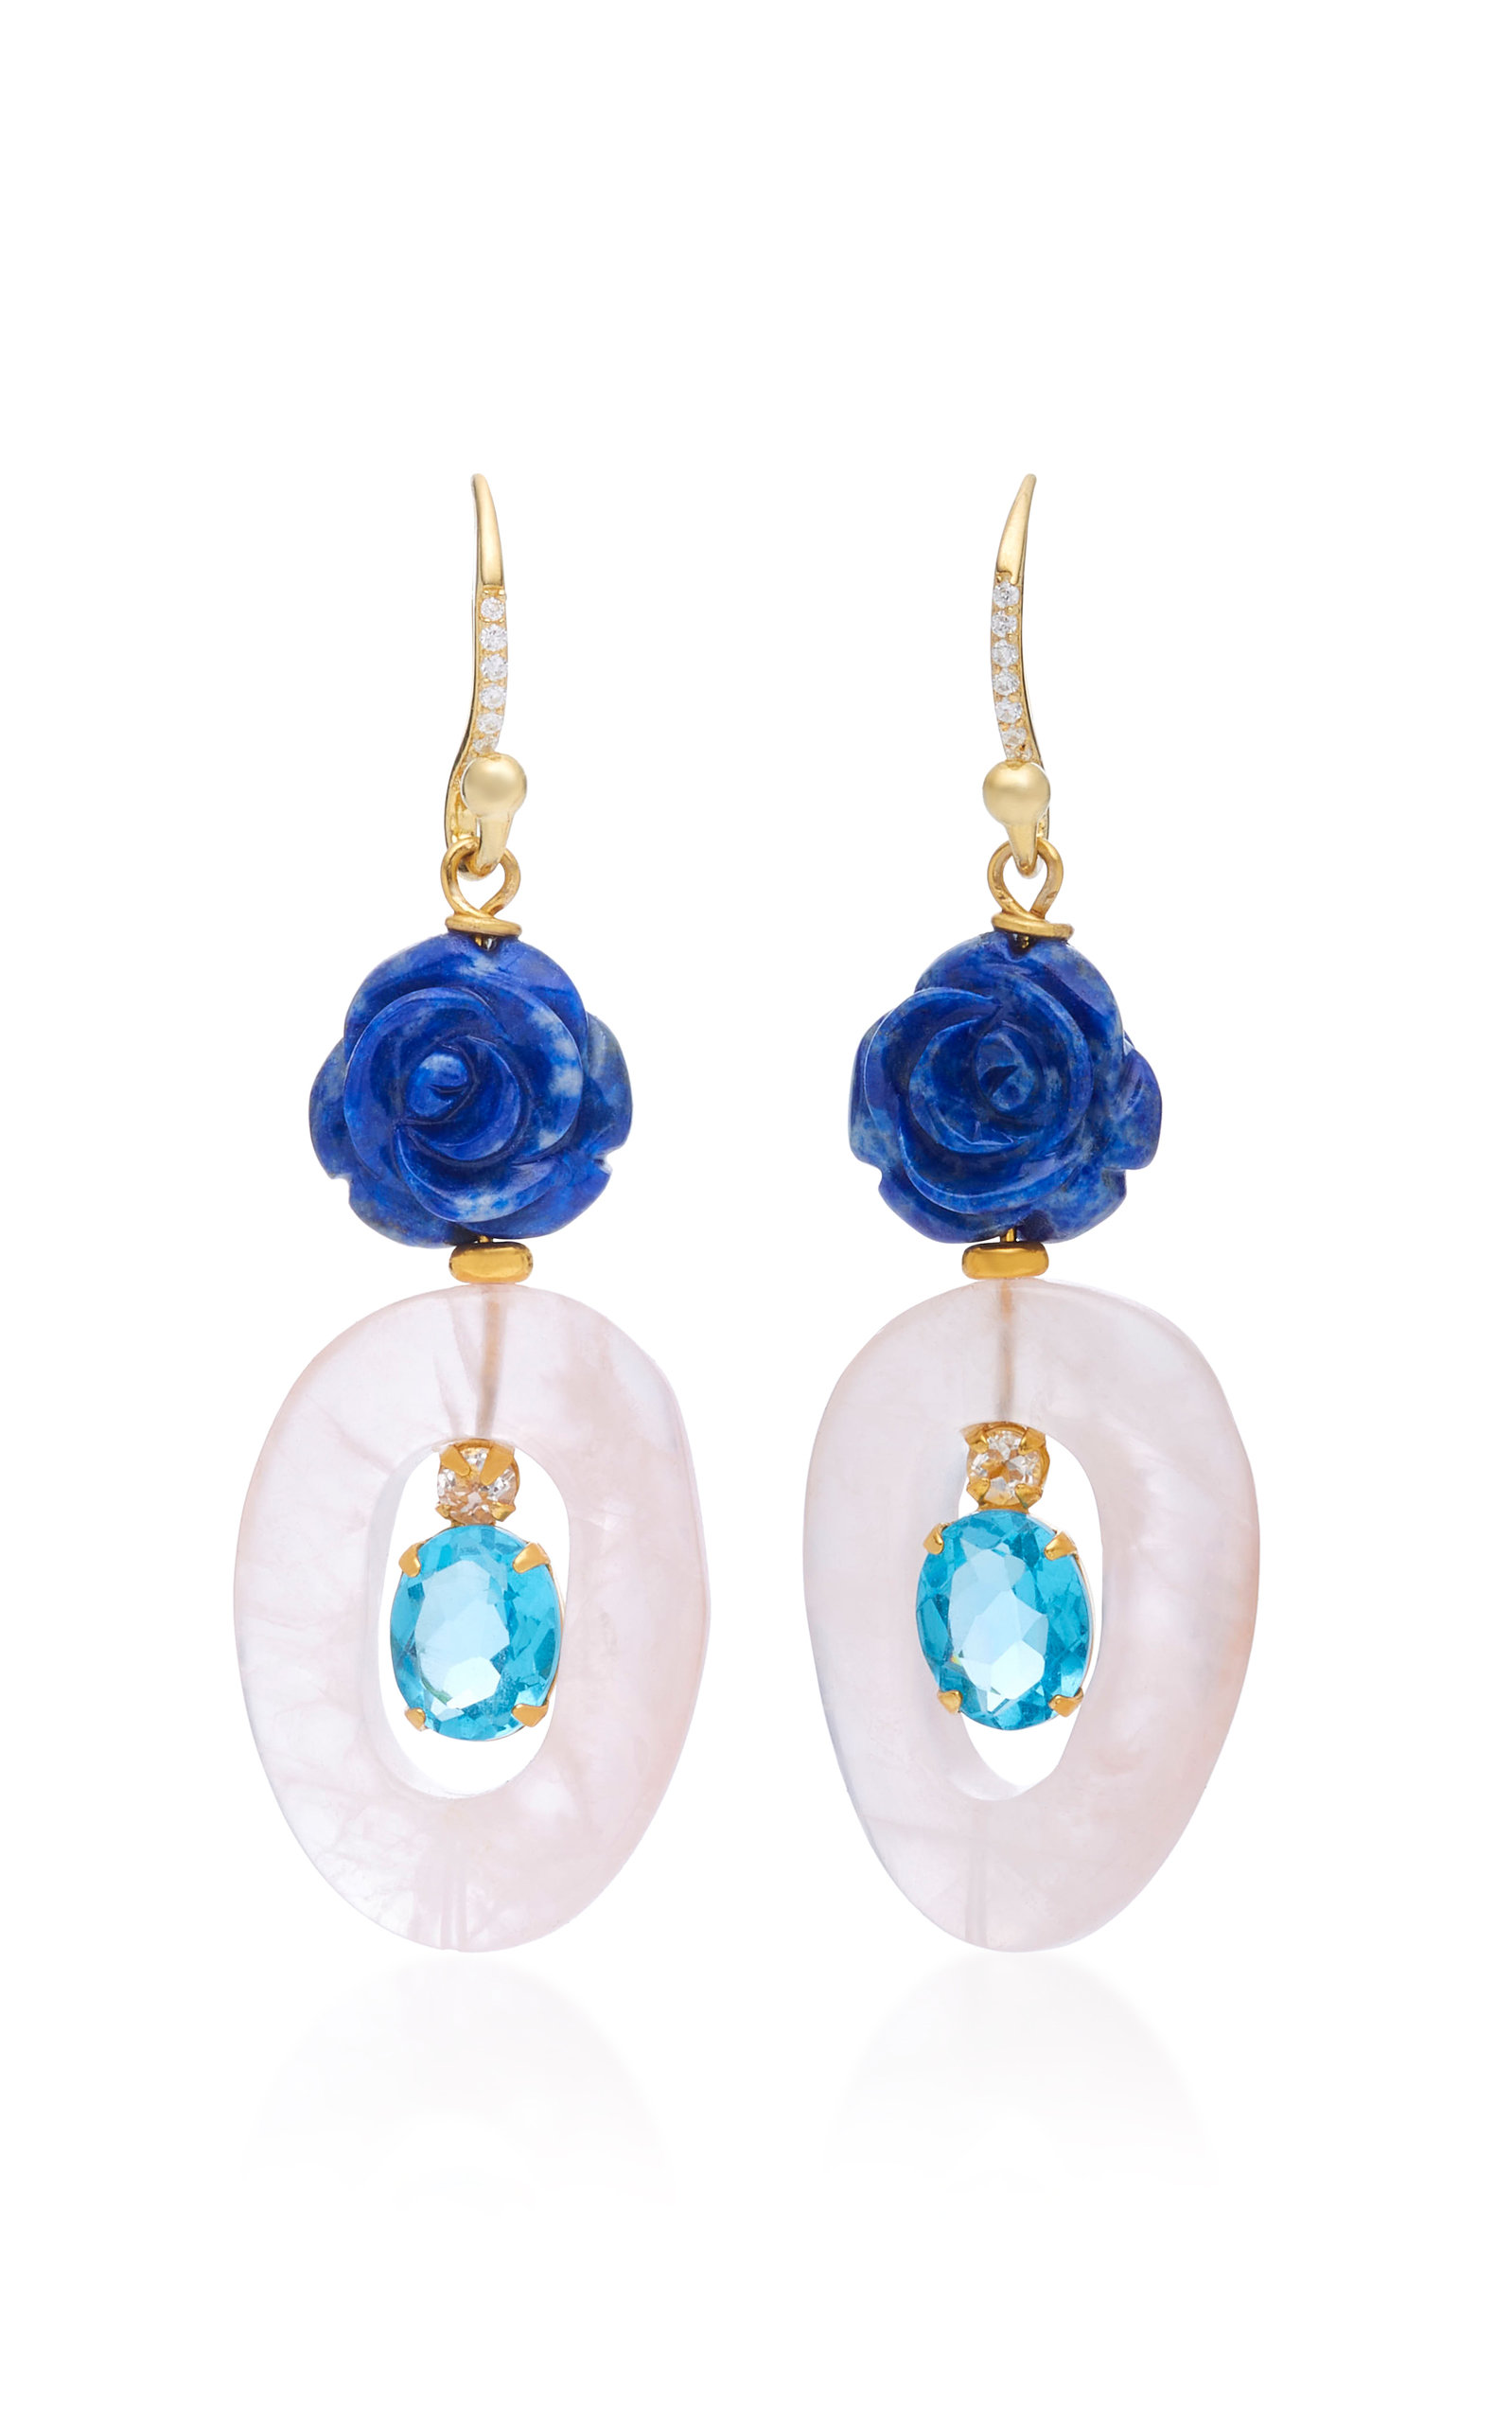 14K Gold-Plated Brass Carved Red Oyster Shell Lapis Blue Lace Agate Earrings Bounkit bDt2NF